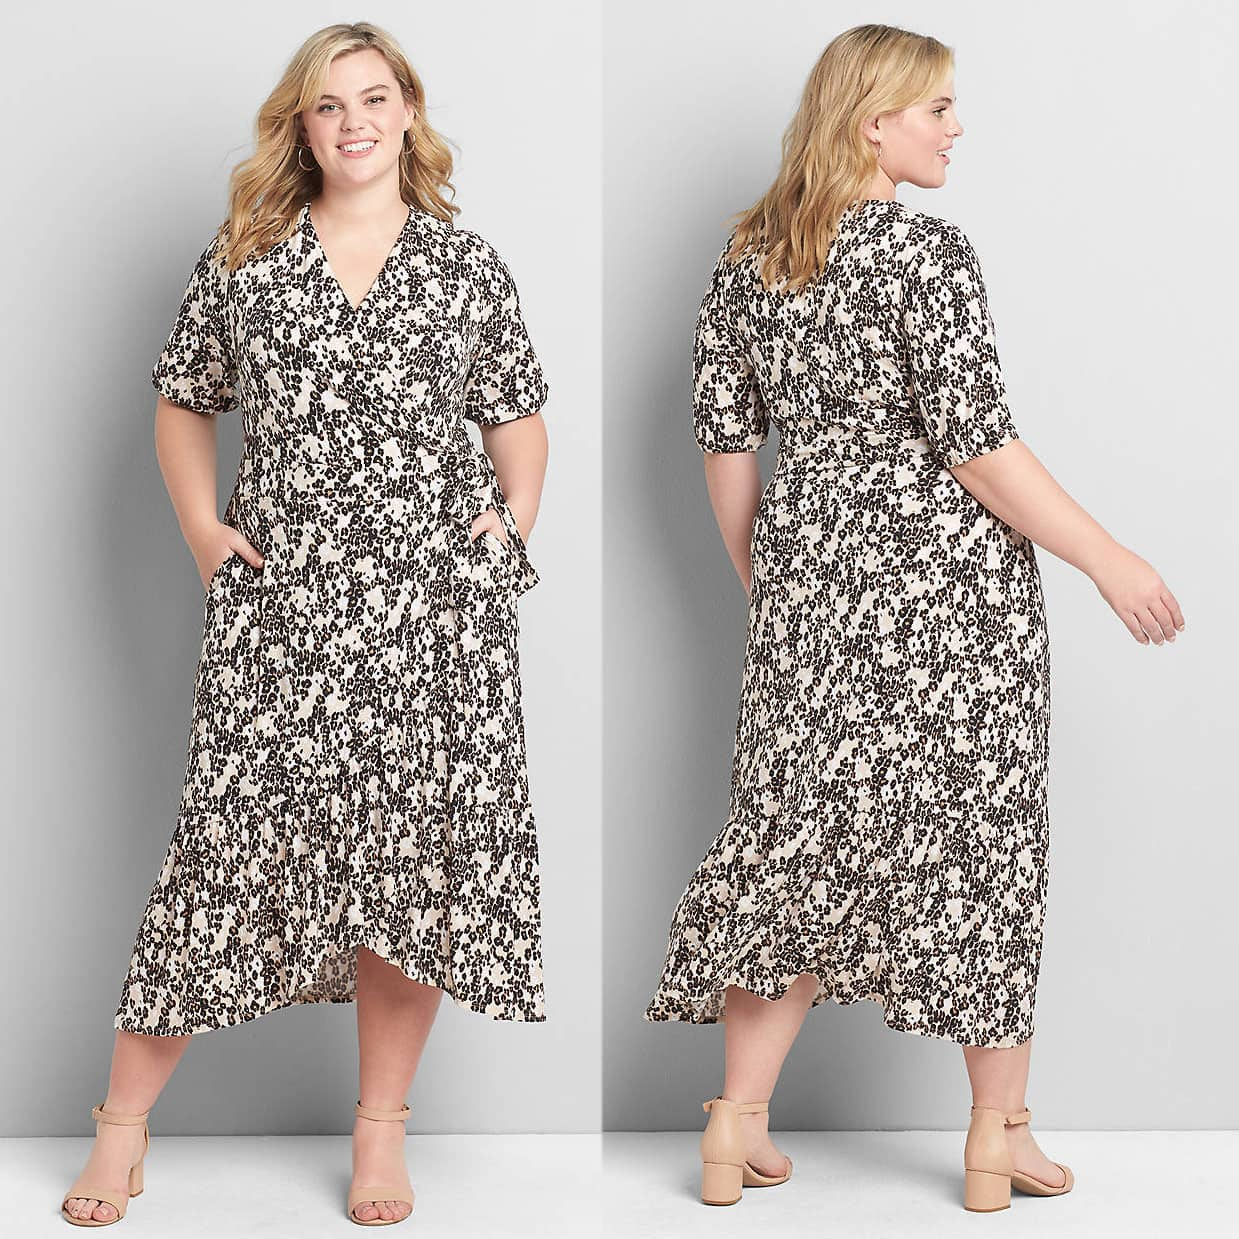 Lane Bryant's floral midi dress has a flattering faux-wrap silhouette, a v-neck, and a flowy wide ruffle along the hem